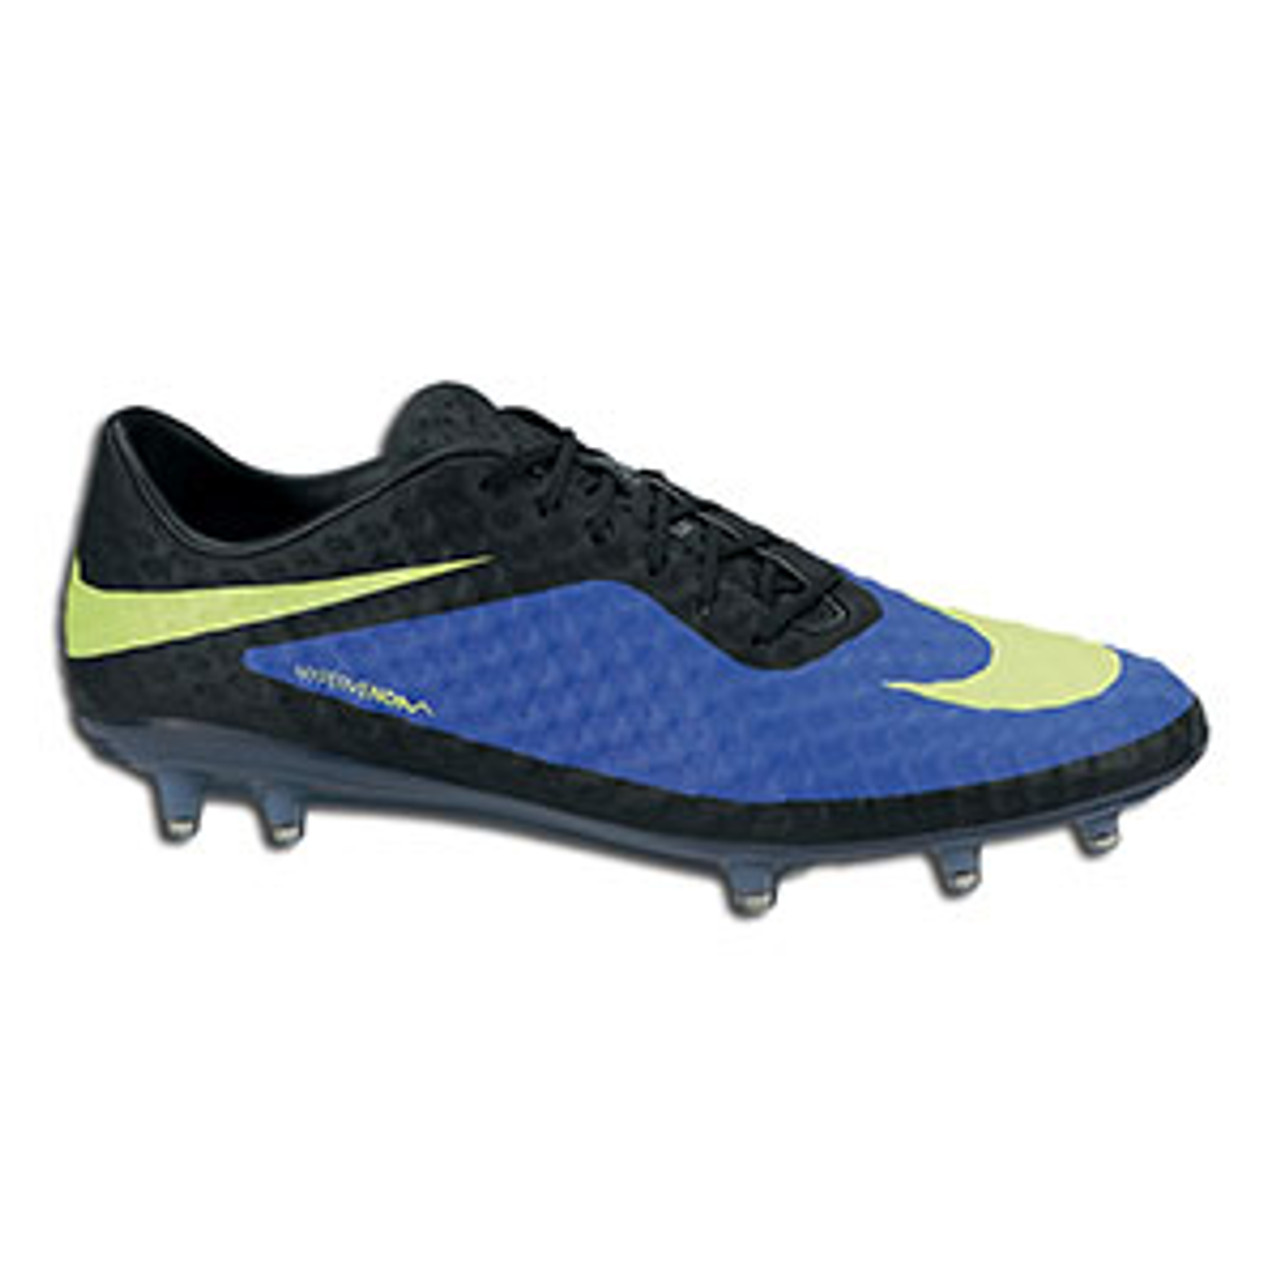 low priced 2fde9 bfb6f NIKE HYPERVENOM PHANTOM FG blue/black/yellow